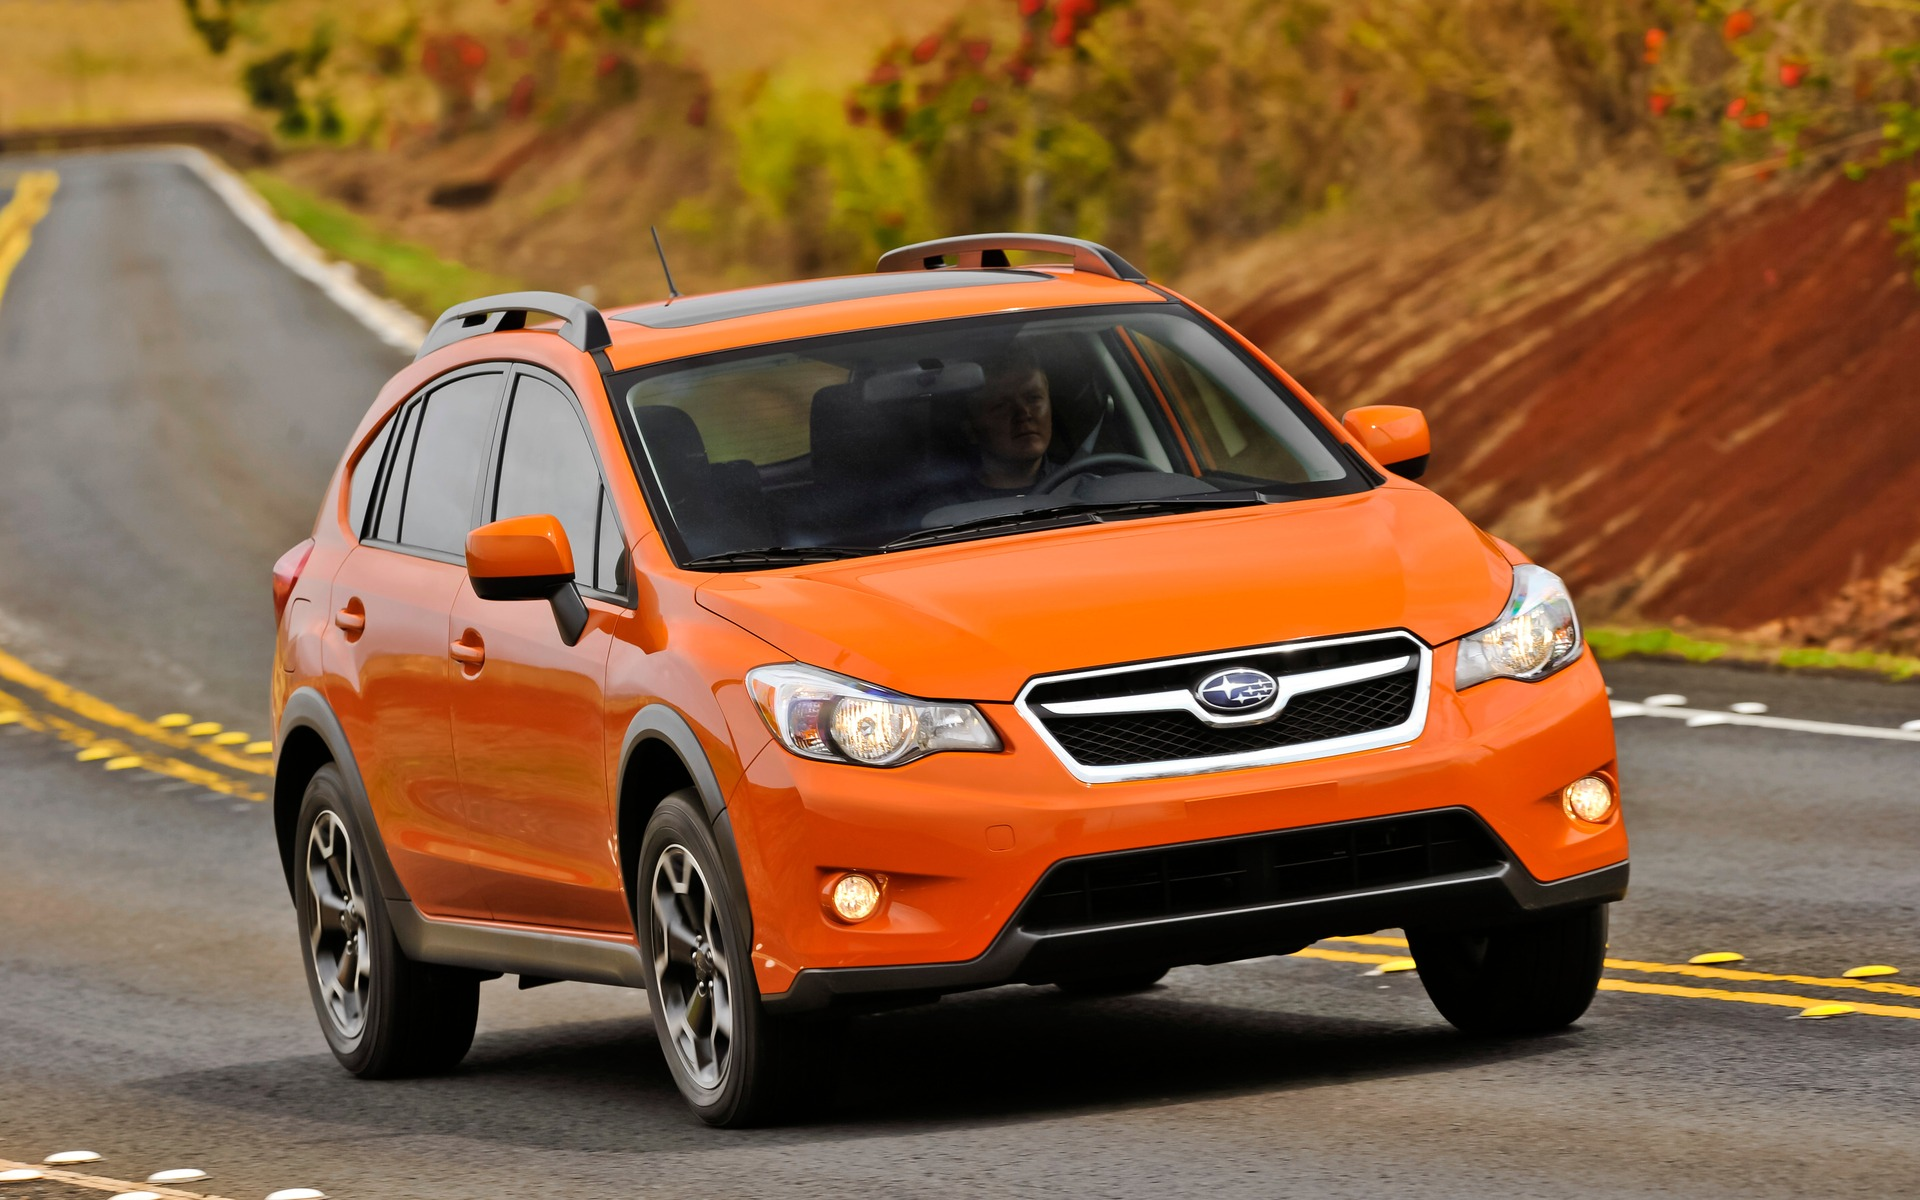 Subaru Recalls 135,000 Vehicles With a Braking Issue - The